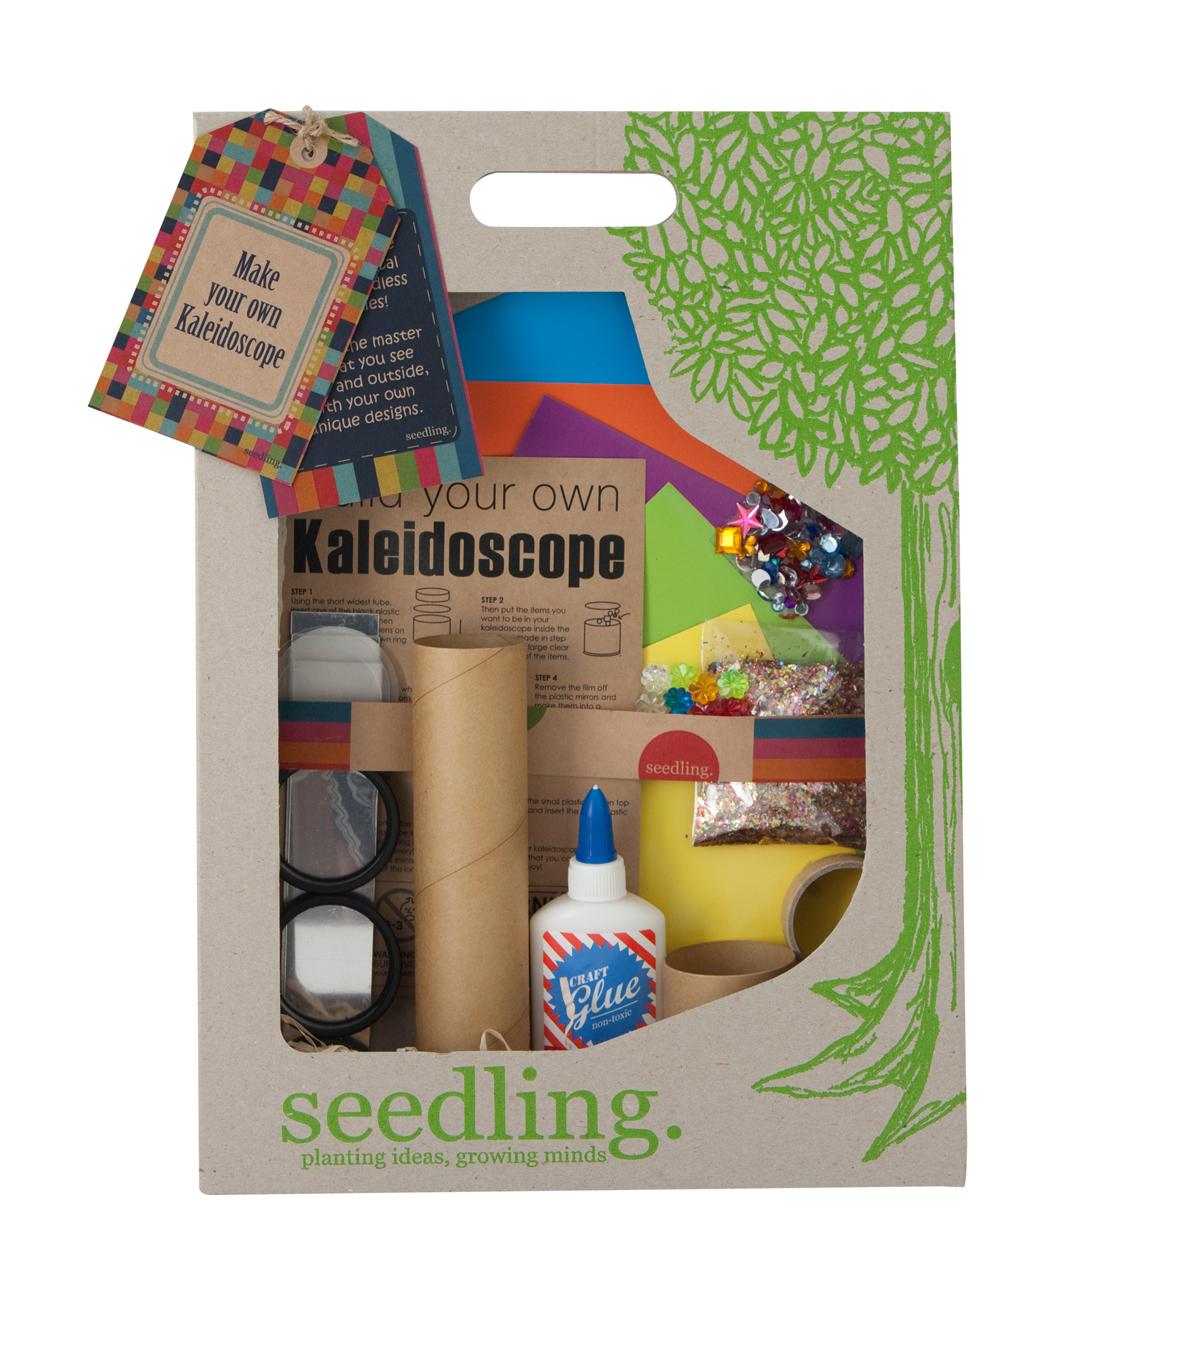 Seedling - Make your own Kaleidoscope